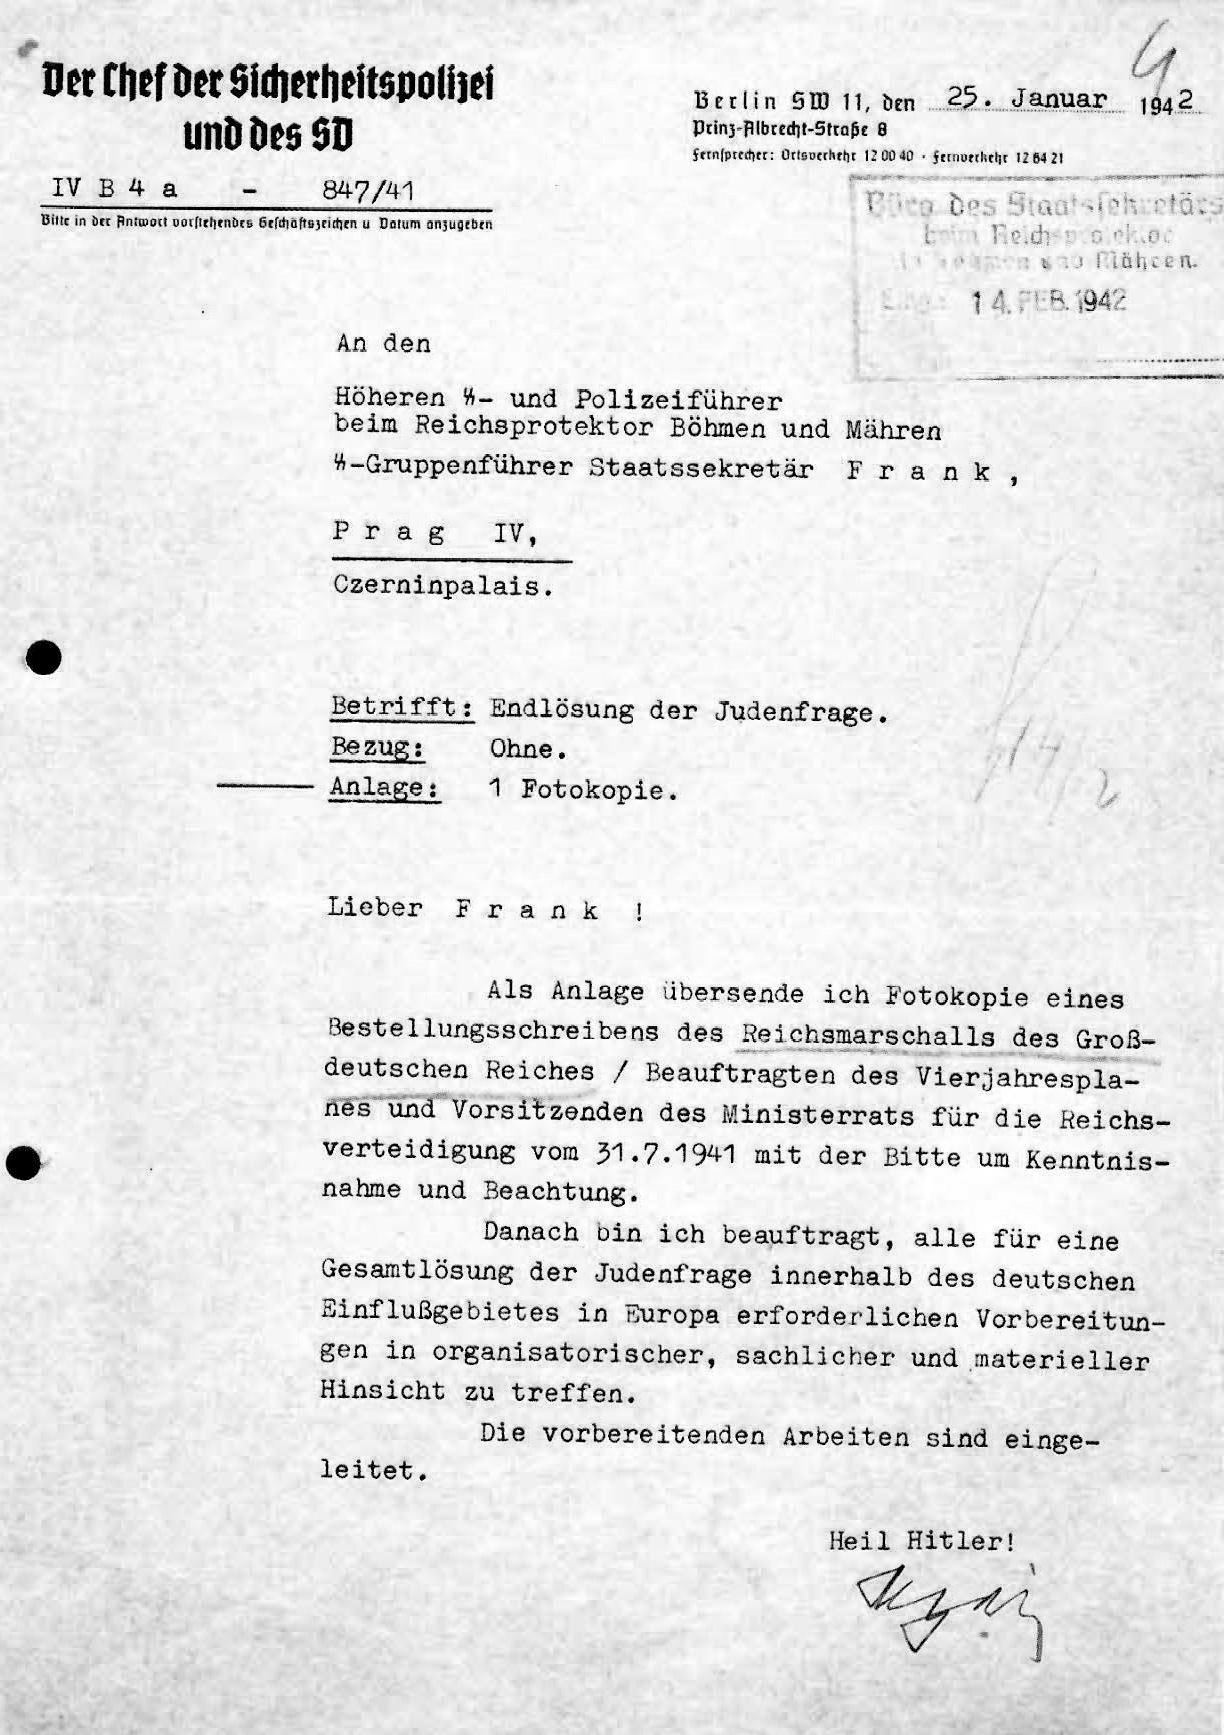 how was the final solution enacted Final solutionfinal solution (of the jewish question  ger endlö-sung der judenfrage ), the nazi plan for the extermination of the jews rooted in 19th-century antisemitic discourse on the jewish question, final solution as a nazi cover term denotes the last stage in the evolution of the third reich's anti-jewish policies from persecution to physical annihilation on a european scale.